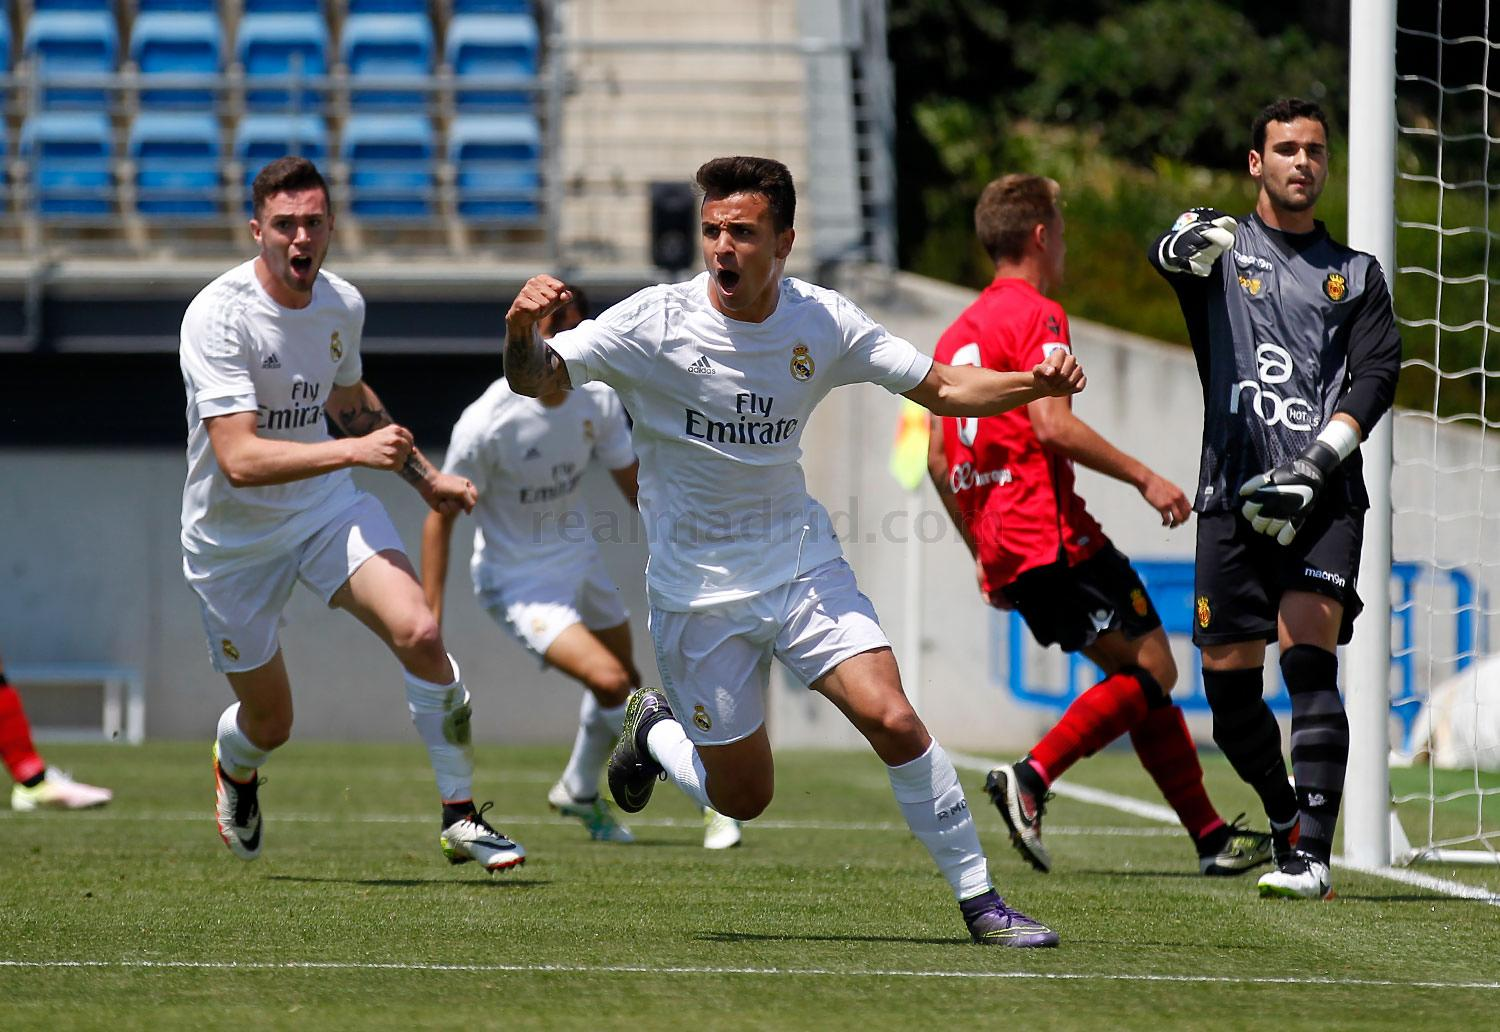 Real Madrid - Juvenil A - Mallorca - 21-05-2016